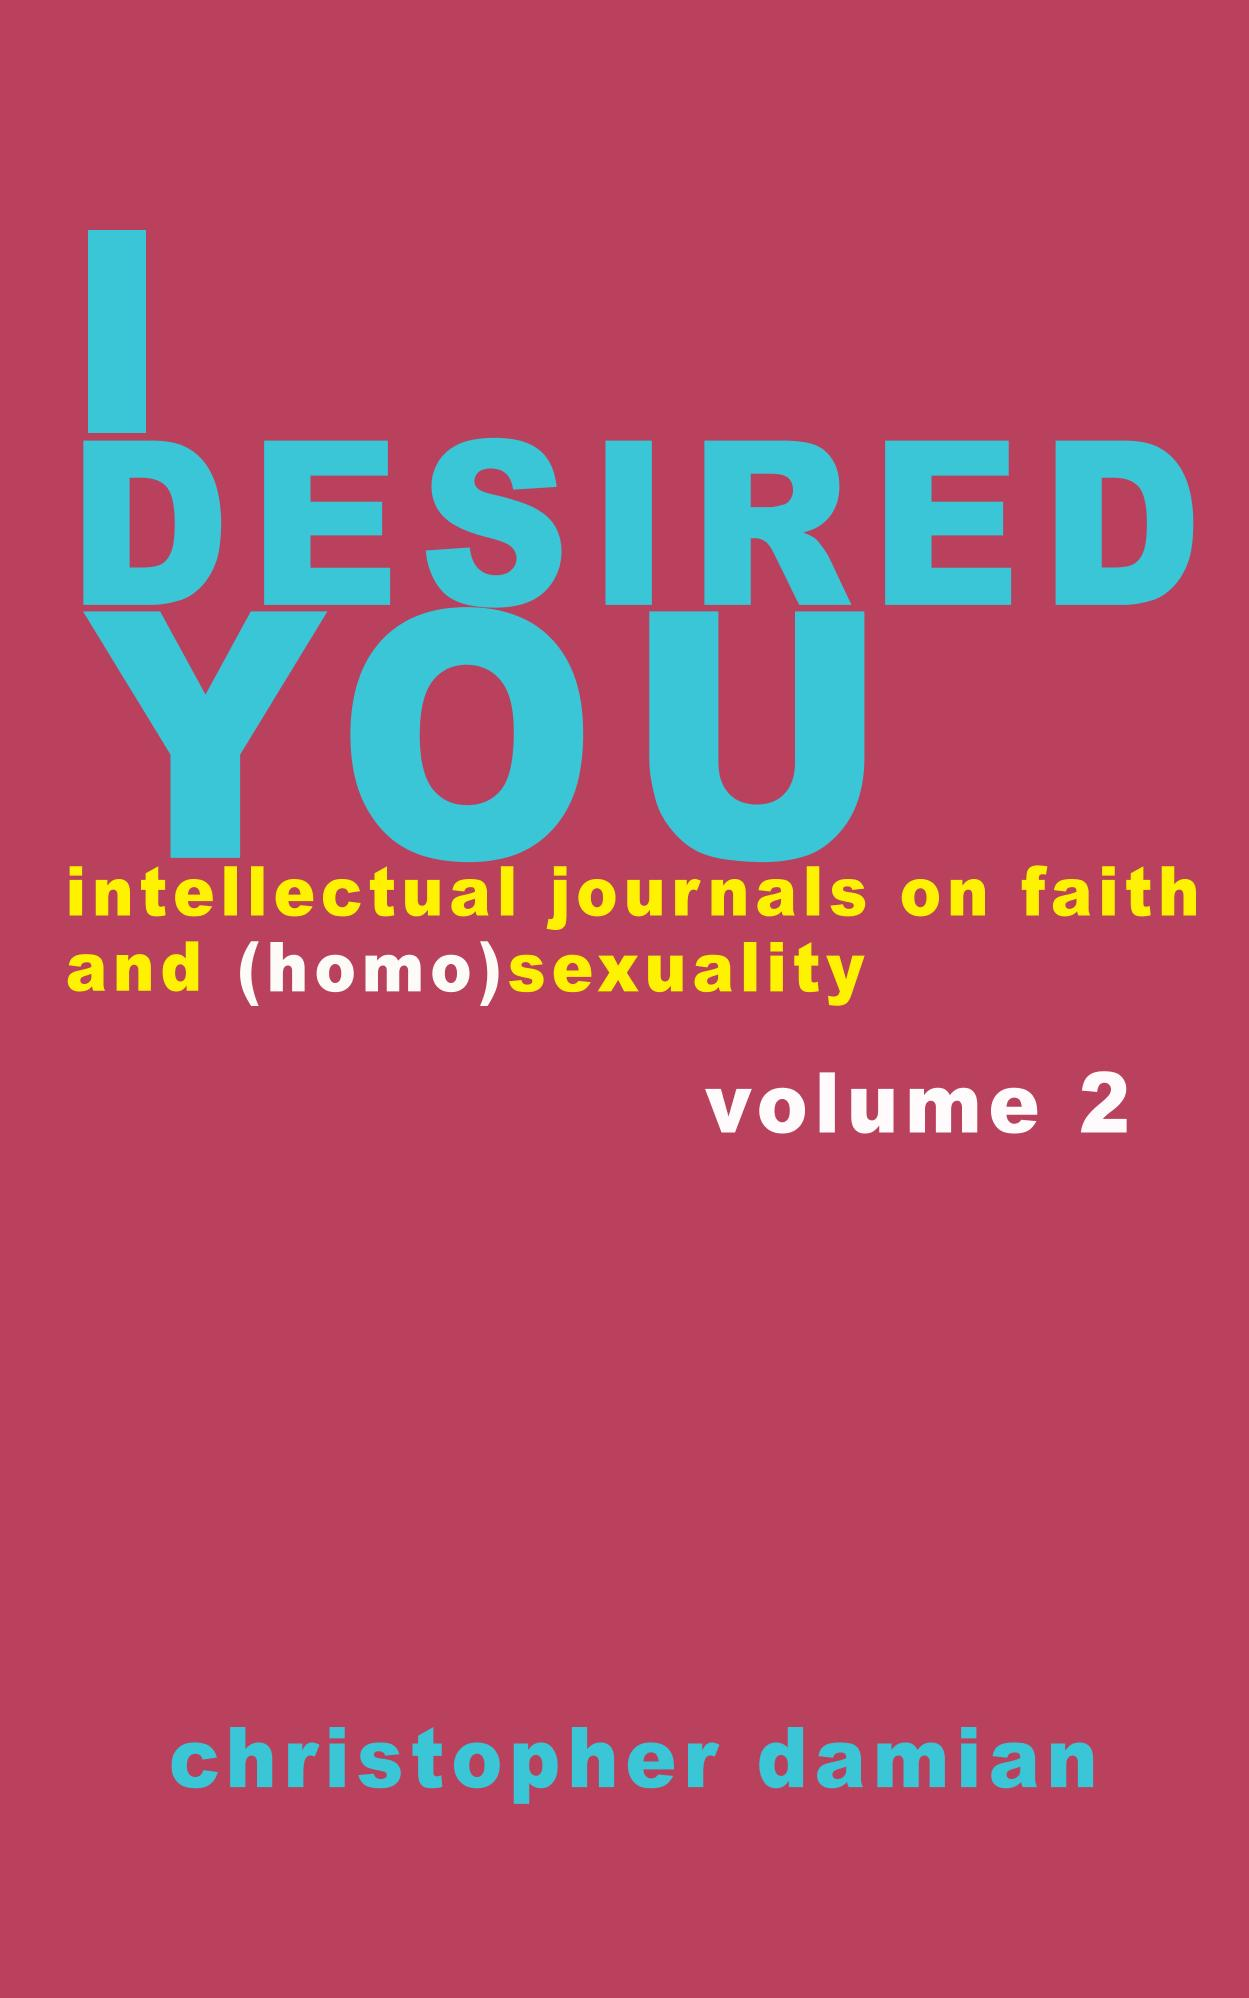 I_Desired_You_Volum_Cover_for_Kindle